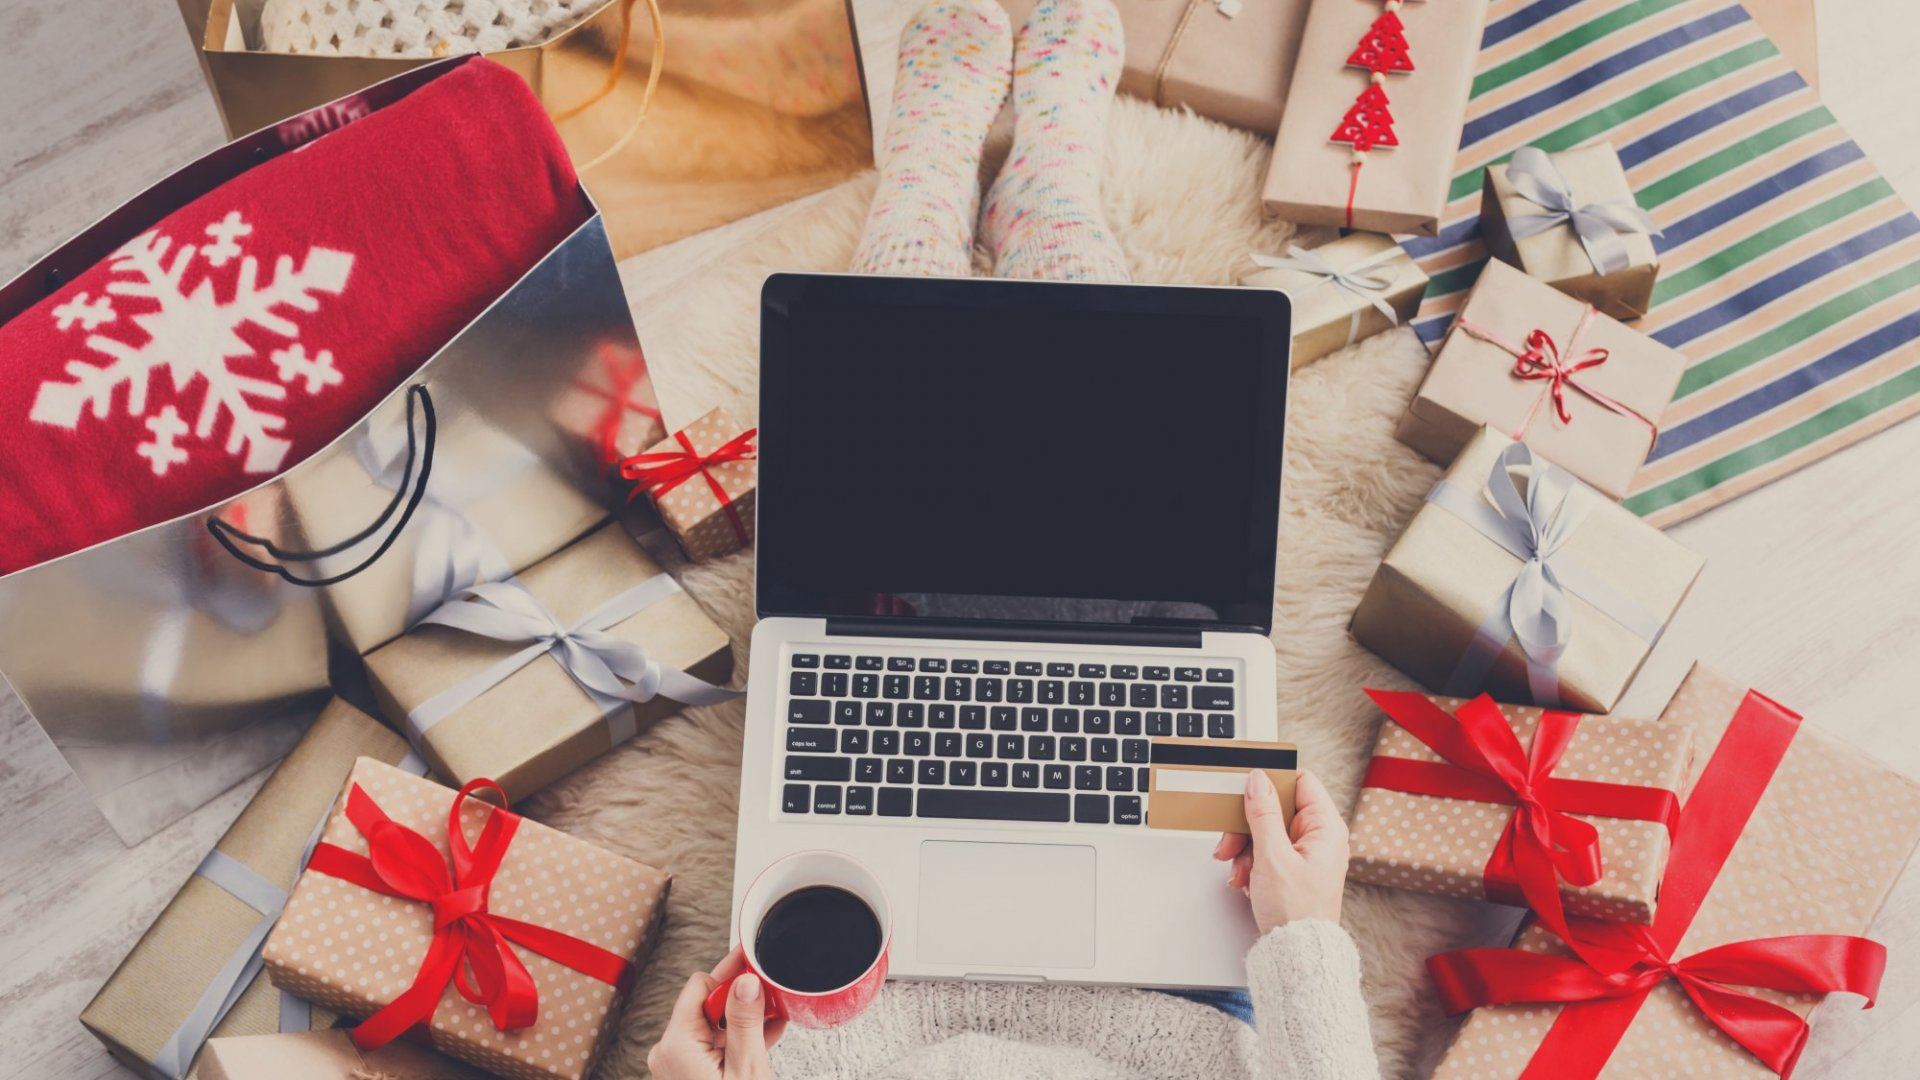 3 Things You Need To Know About The Future Of Retail Based On 2017 Holiday Shopping Trends